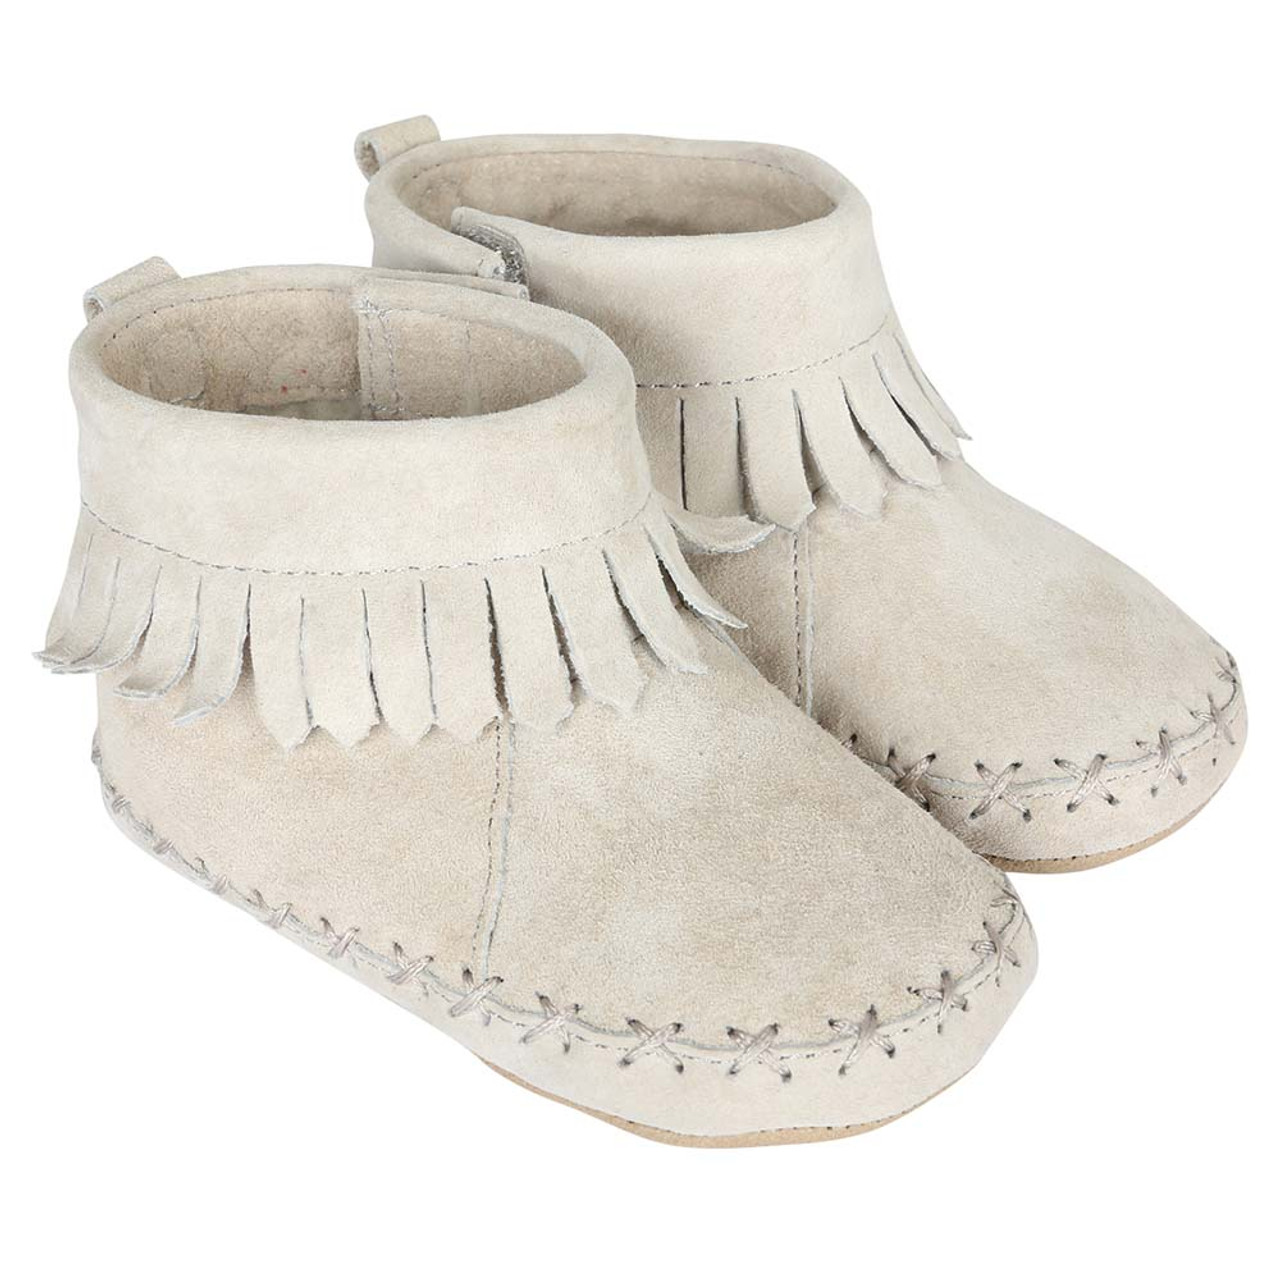 783d8d384662 ... Robeez Cozy Ankle Moccasins Grey Soft Soles. Baby Moccasins in grey  suede with fringe. Soft Soles for boys or girls.